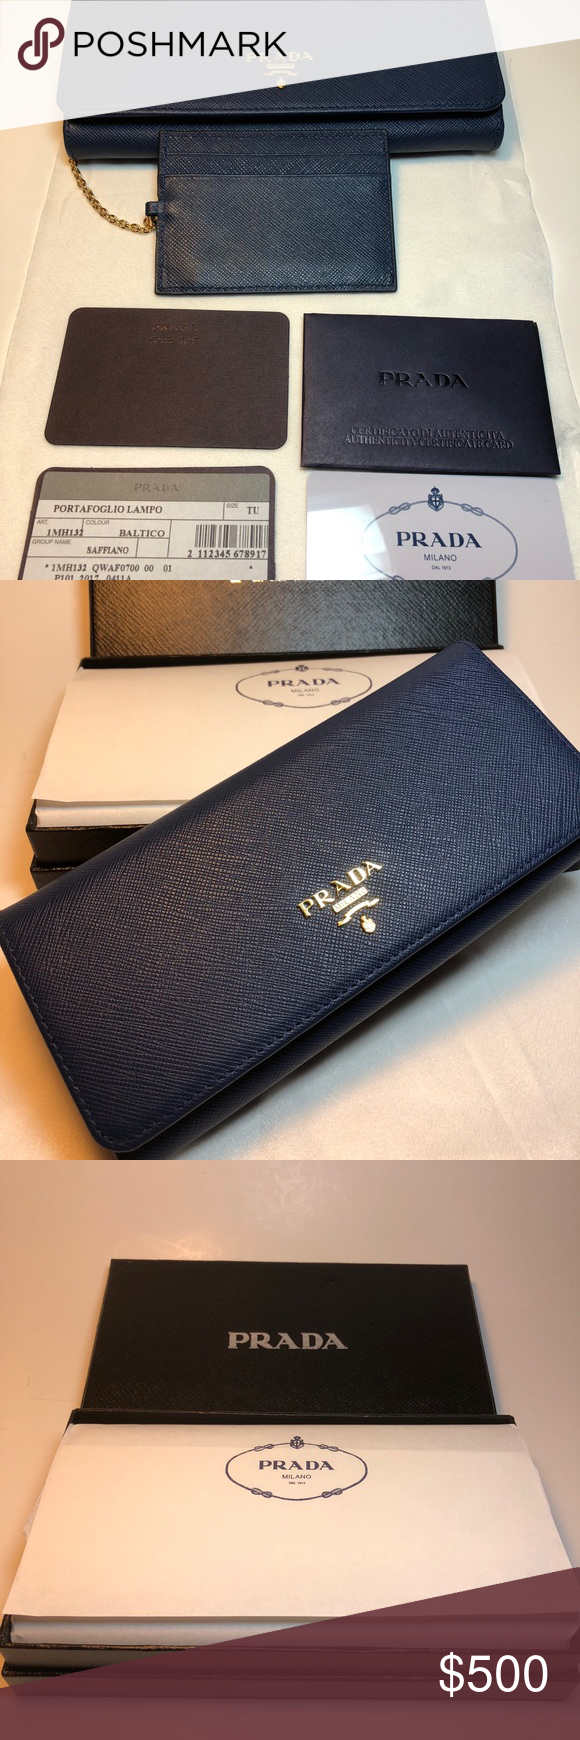 a2fb288c45f2 Prada Saffiano Leather Wallet Navy blue color Never used - has box ...